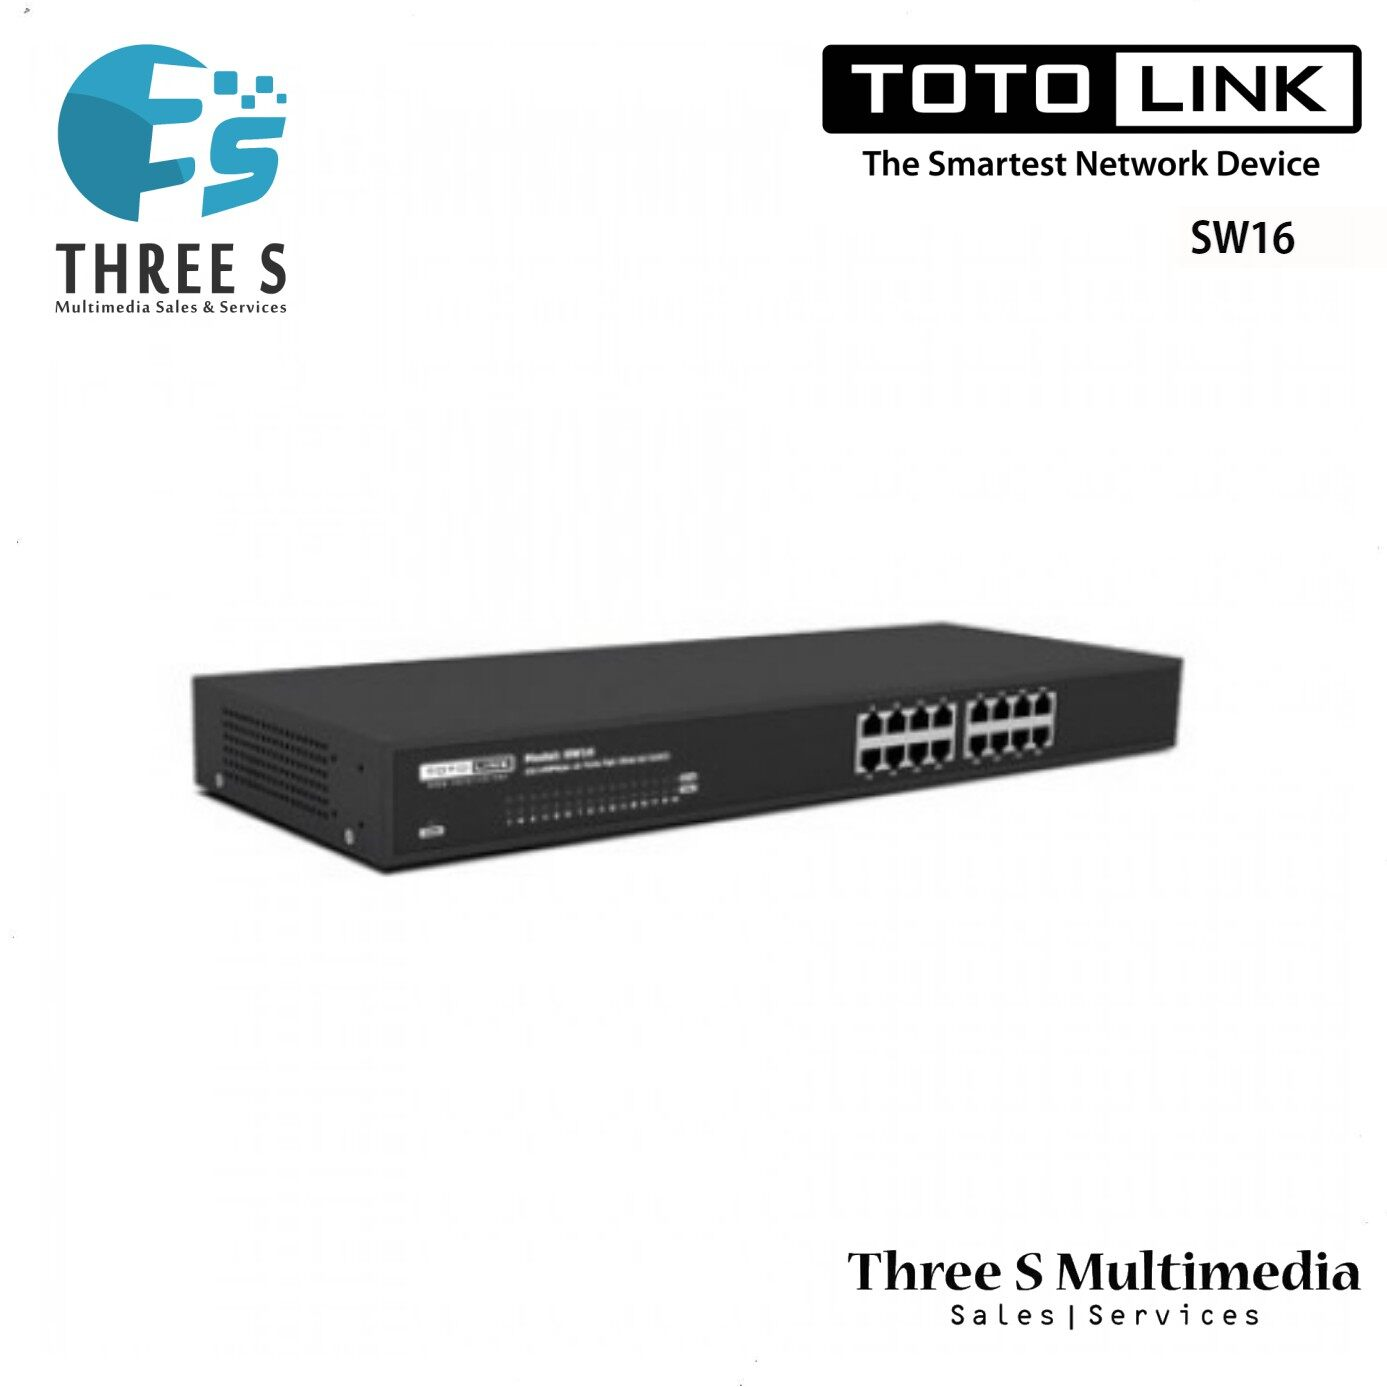 TOTO LINK 16-Port 10/100Mbps Unmanaged Switch SW16